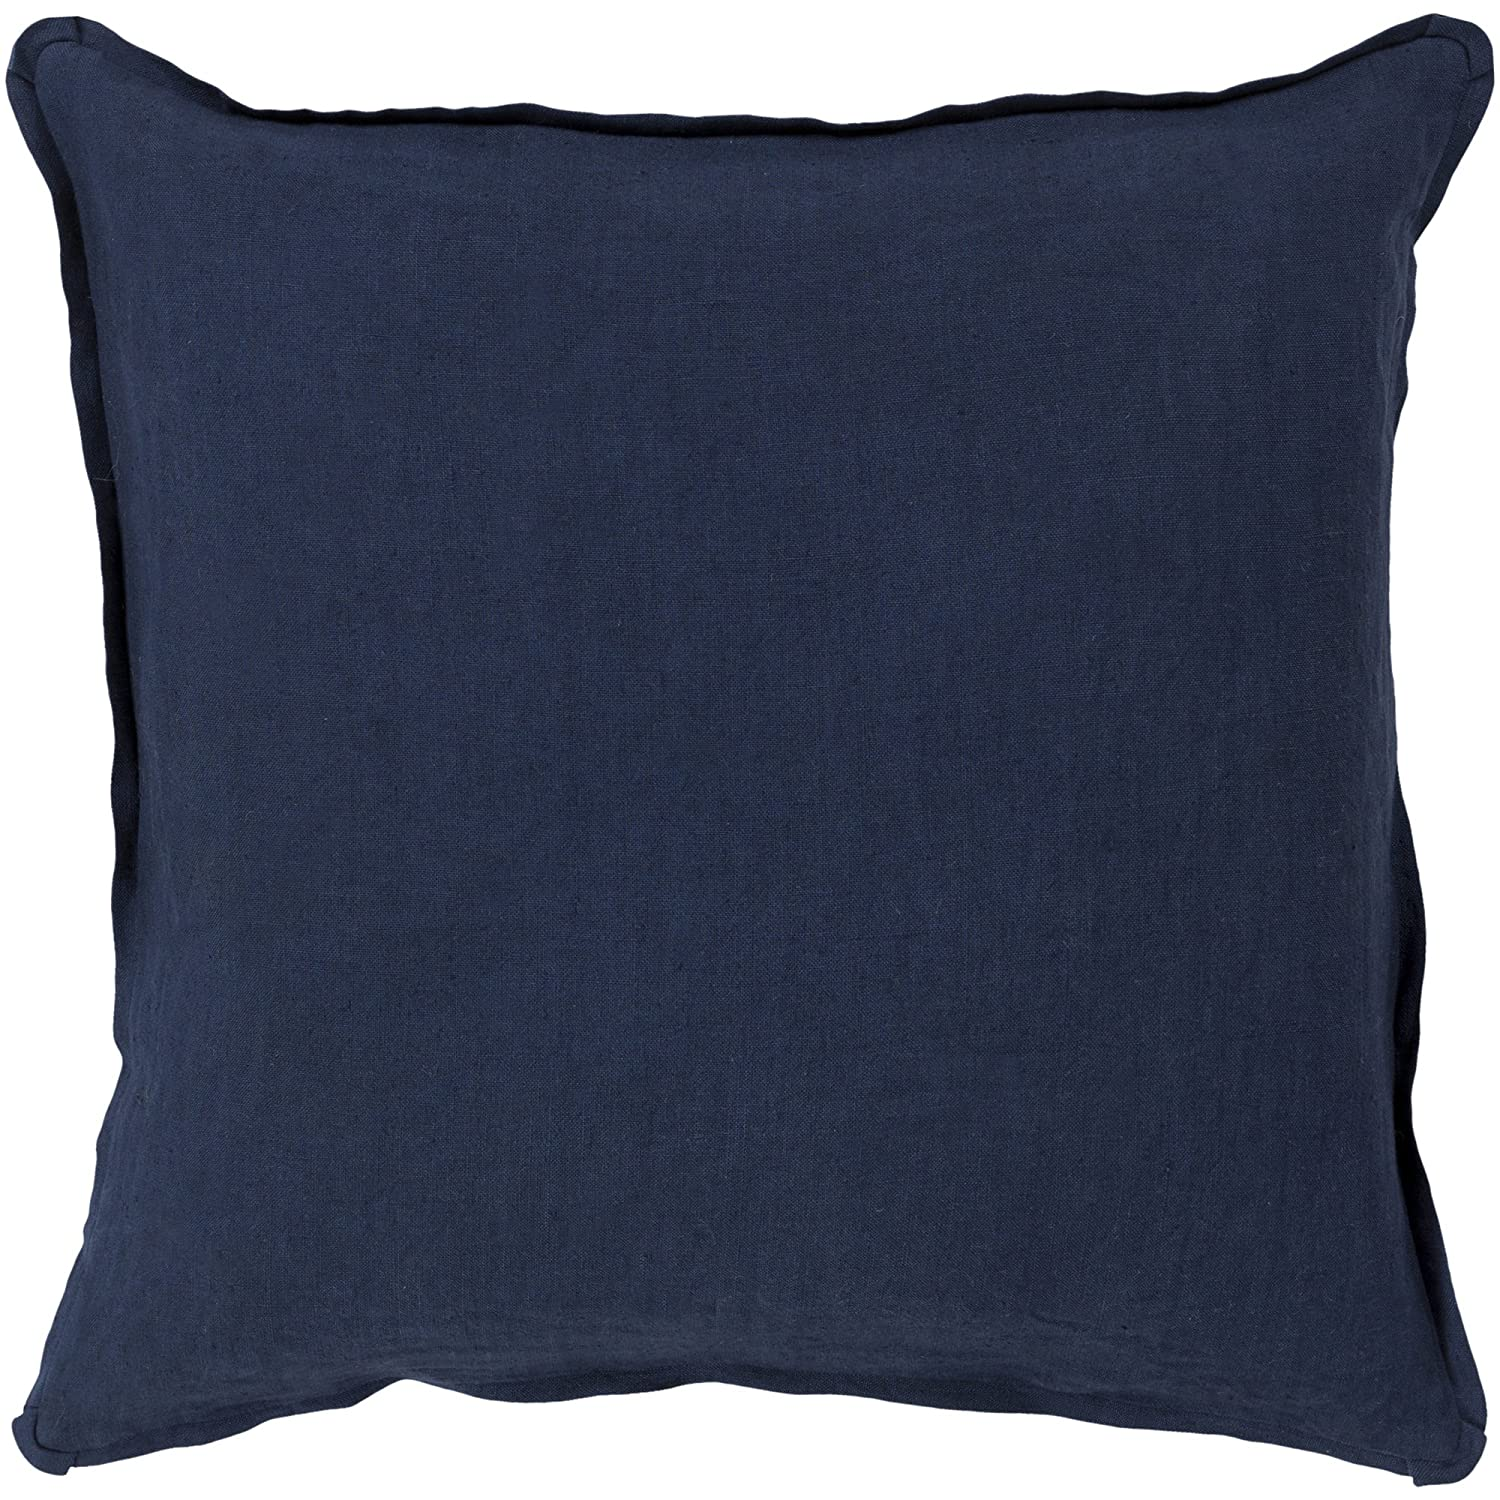 Surya Rug SL012-2222D Square Navy Down Feathers Pillow 22 in.   B00H2KBUH8